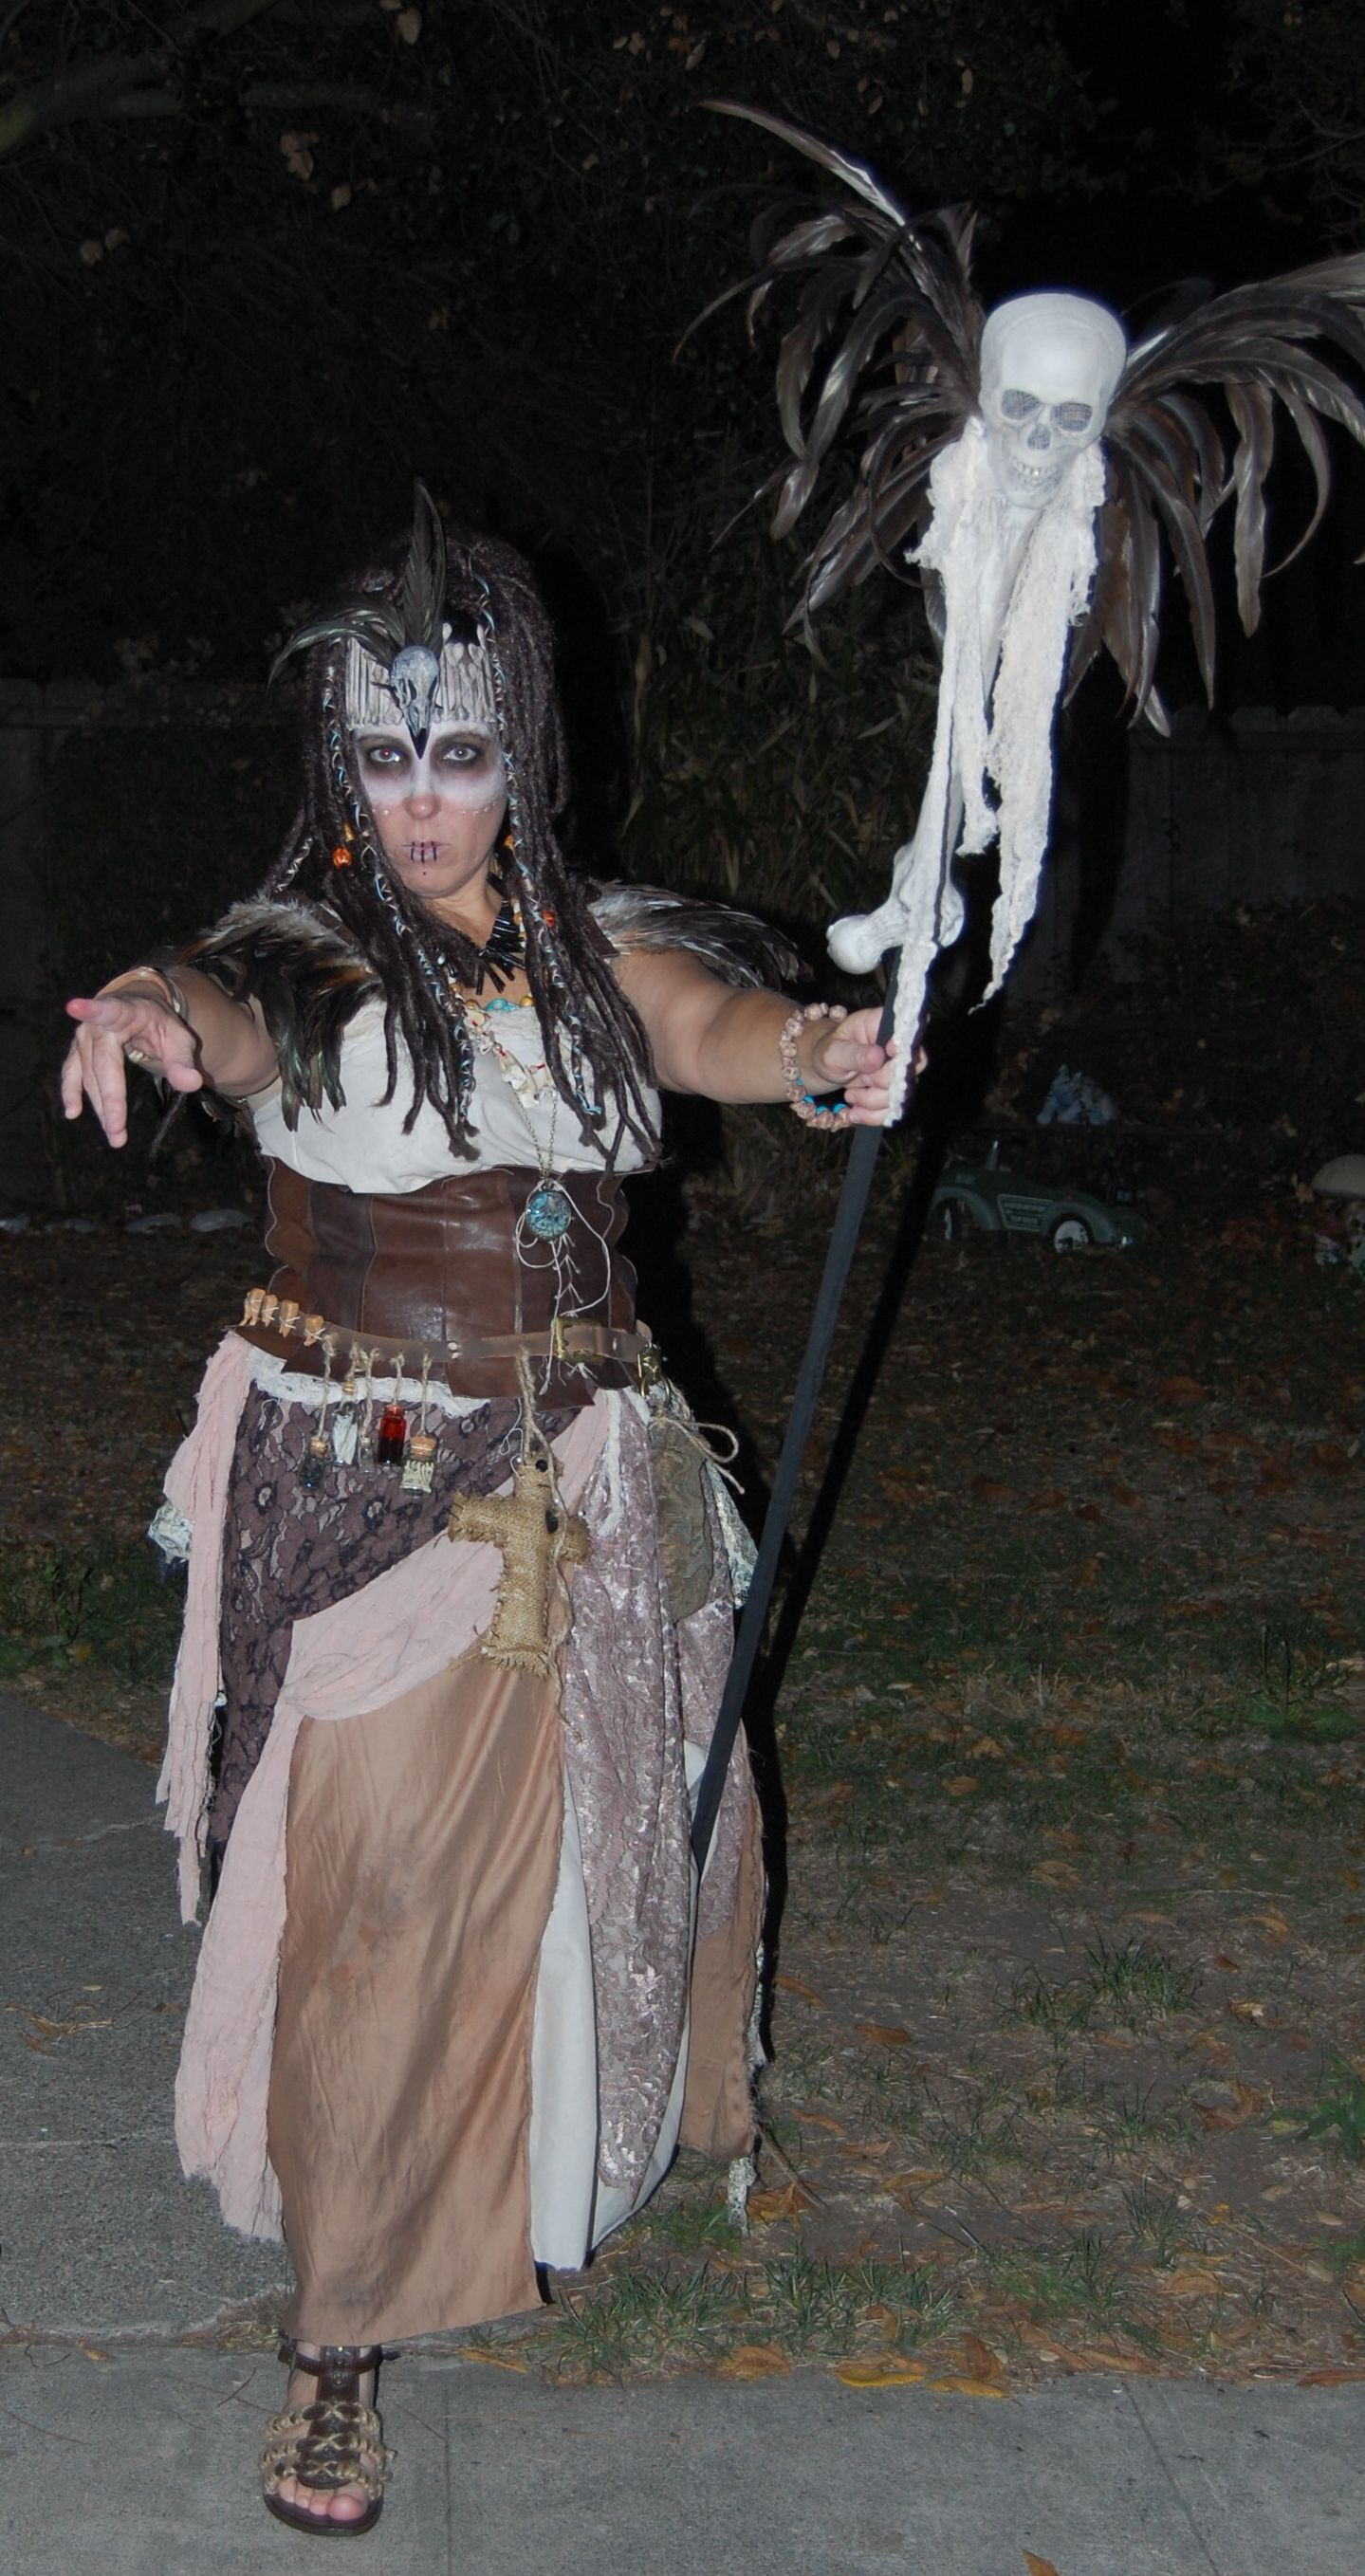 This is my Voodoo witch doctor costume | My creations